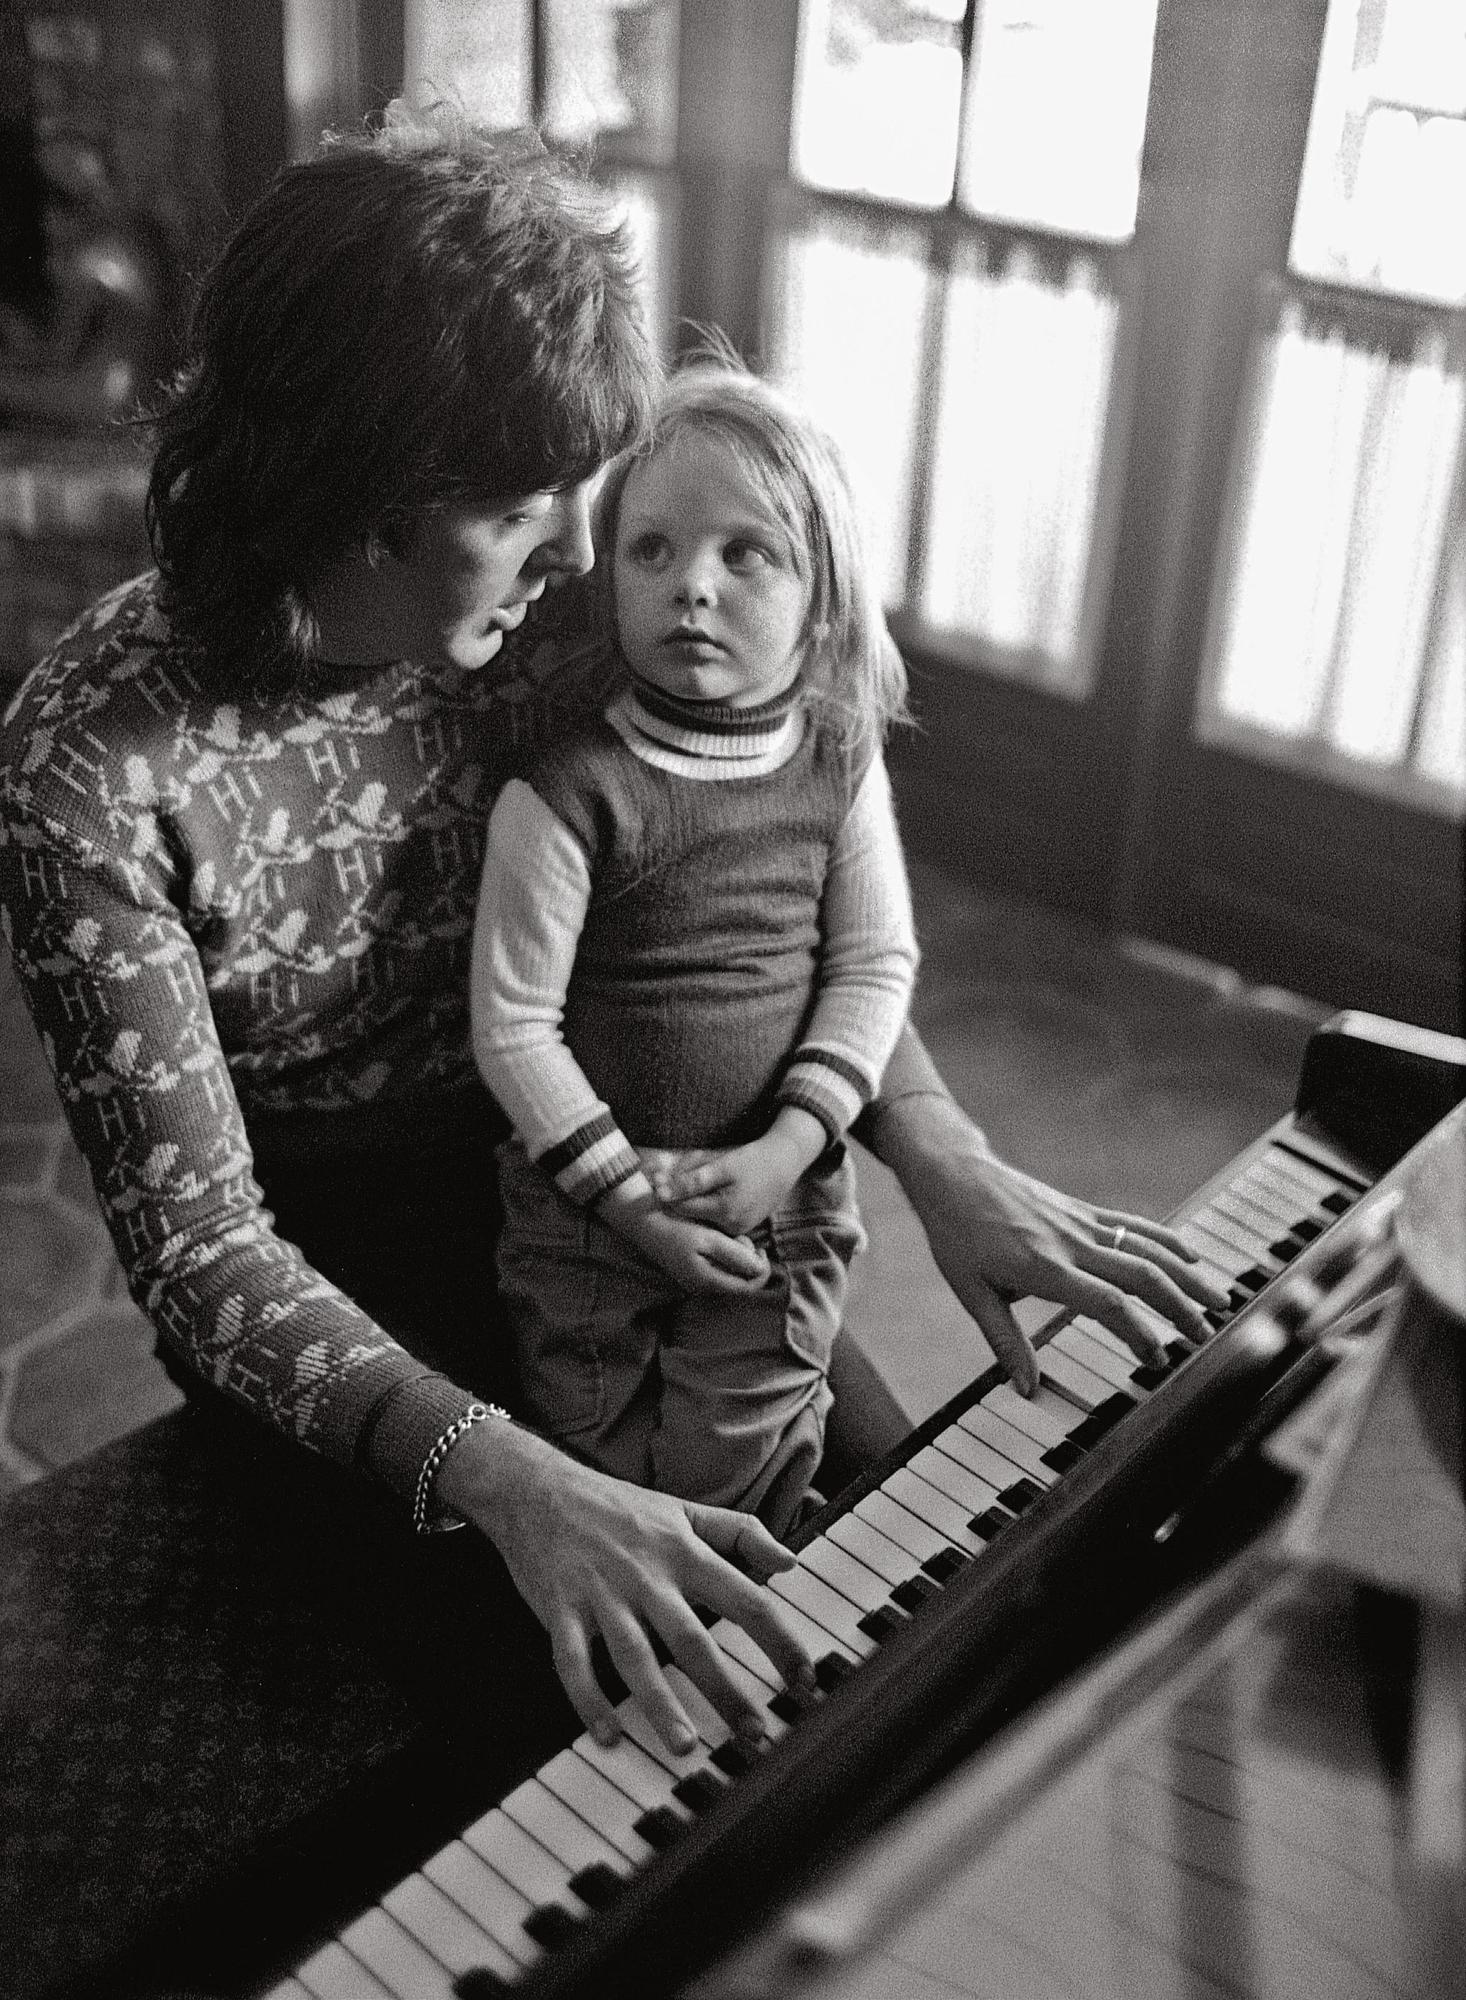 Three-year-old Stella listens to her father composing music.  (Los Angeles, March 1975)